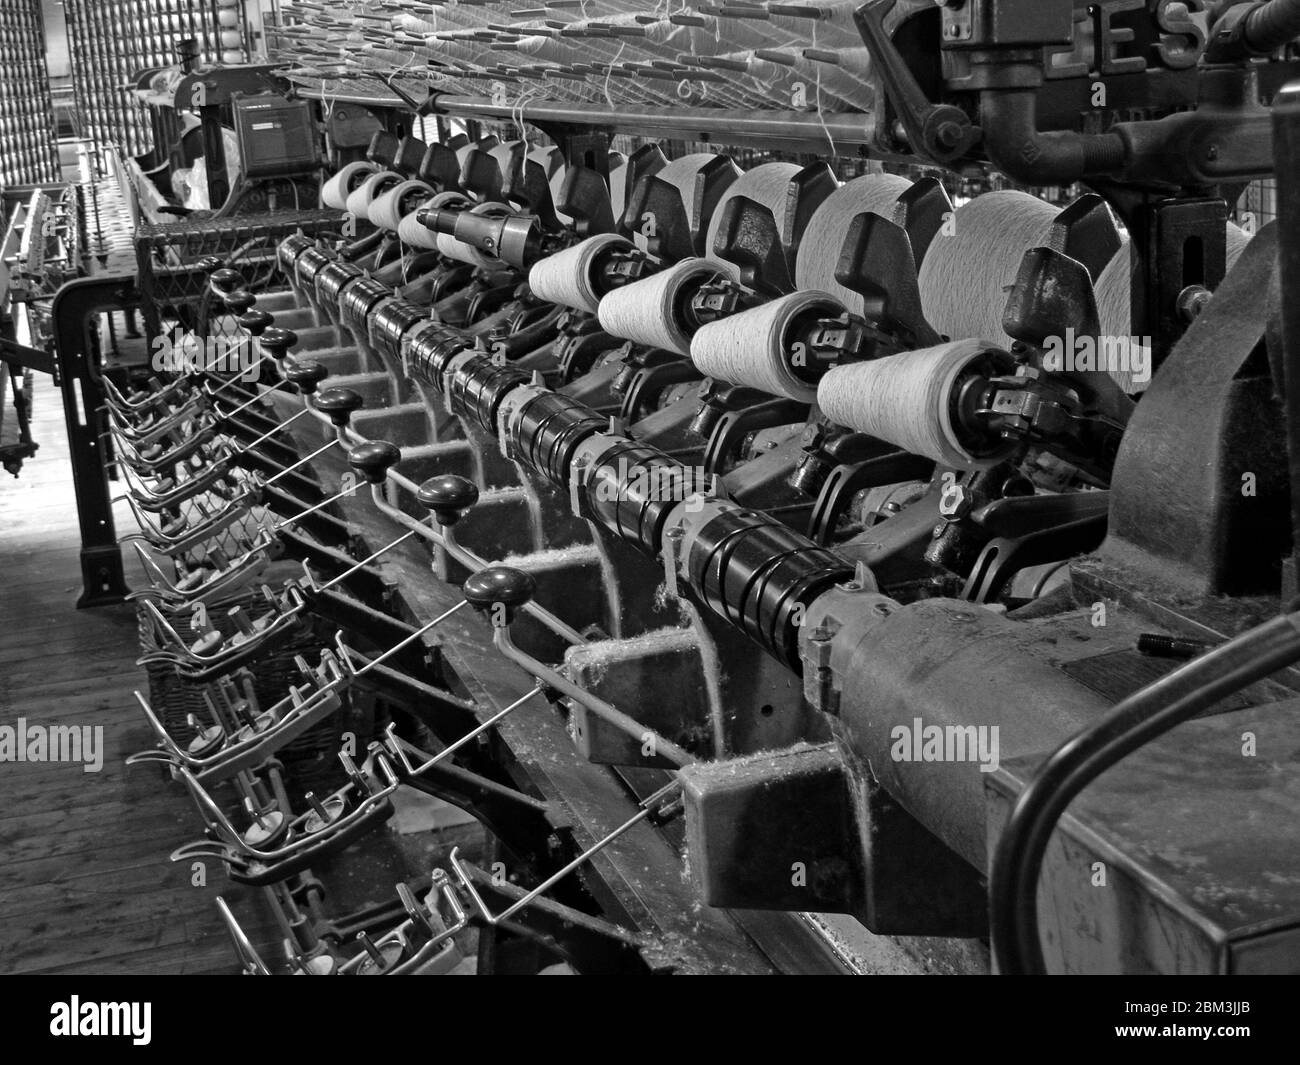 GoTonySmith,HotpixUK,@HotpixUK,Manchester,industry,factory,mill,history,machines,cloth,manufacture,Lancashire,Victorian,mass production,Industrial Revolution,Textile manufacturing,Manchester factory,manufacturing cotton and cloth,cotton yarn,Cotton Mill,Cottonopolis,Inside a Manchester Cotton Mill,1948 Roto-Coner machine,1948,Roto-Coner,machine,RotoConer machine,Roto-Coner machine